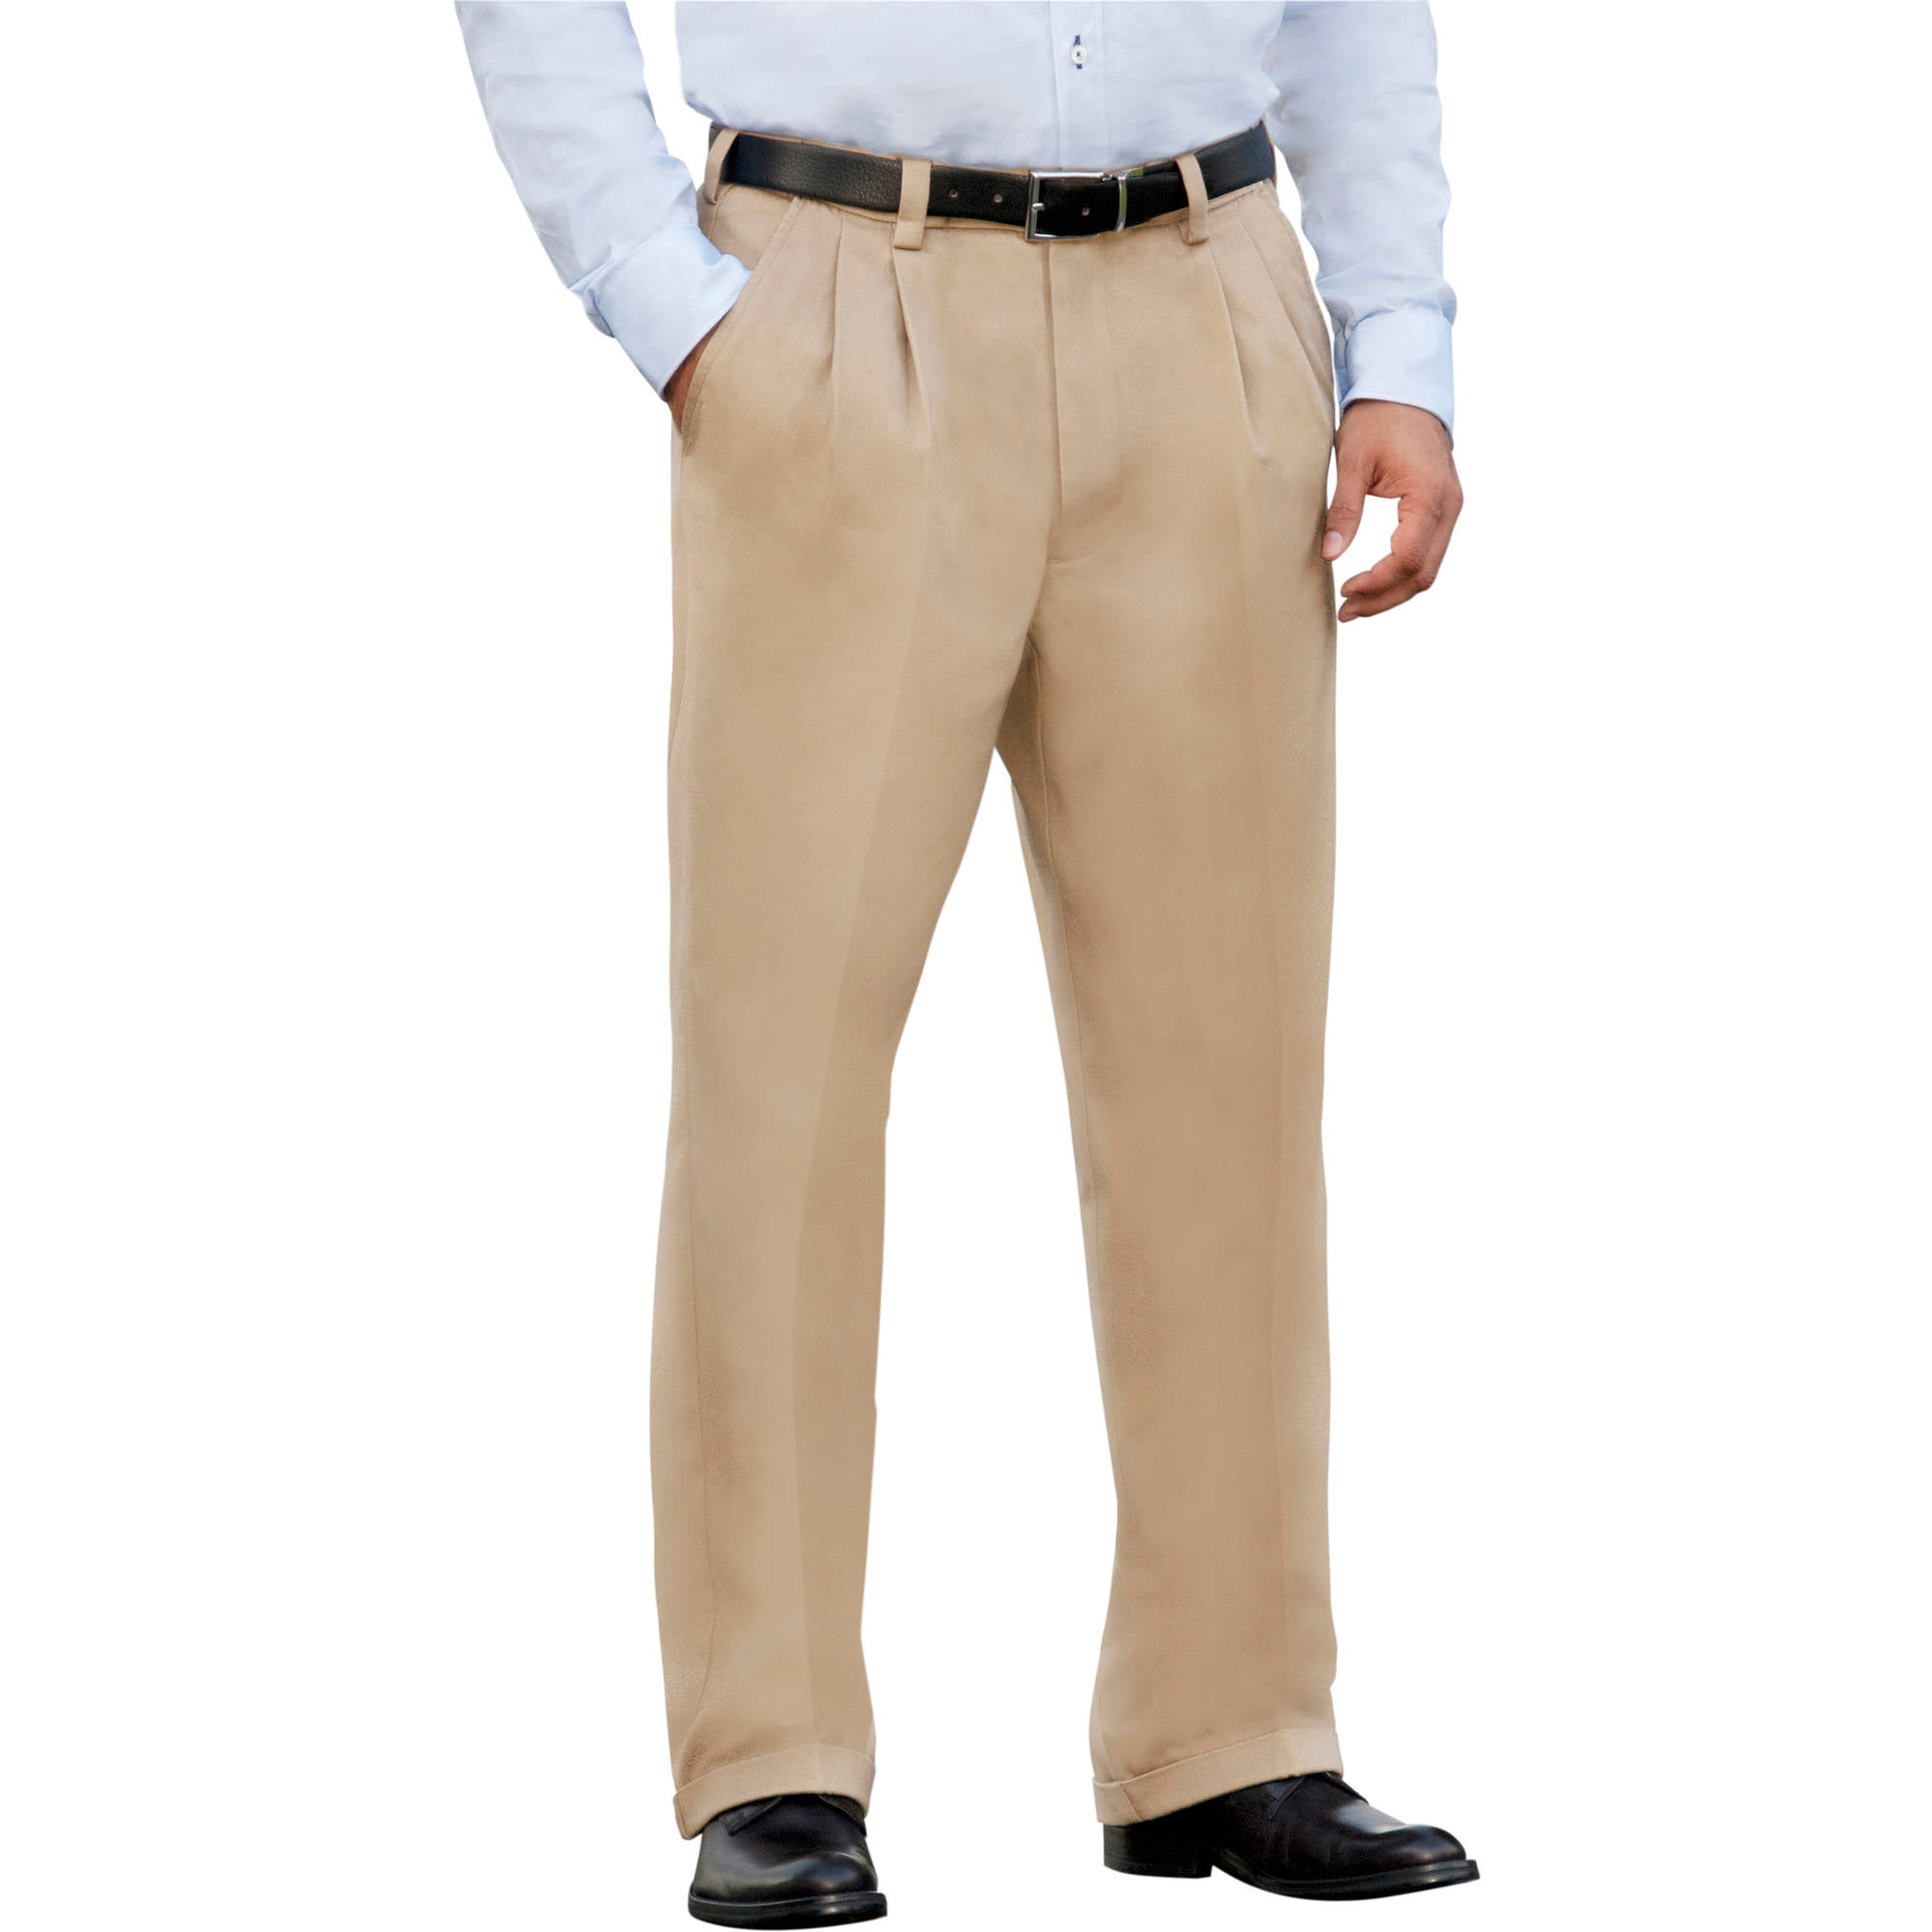 George Men's Premium Pleat Front Khaki Pants - Walmart.com